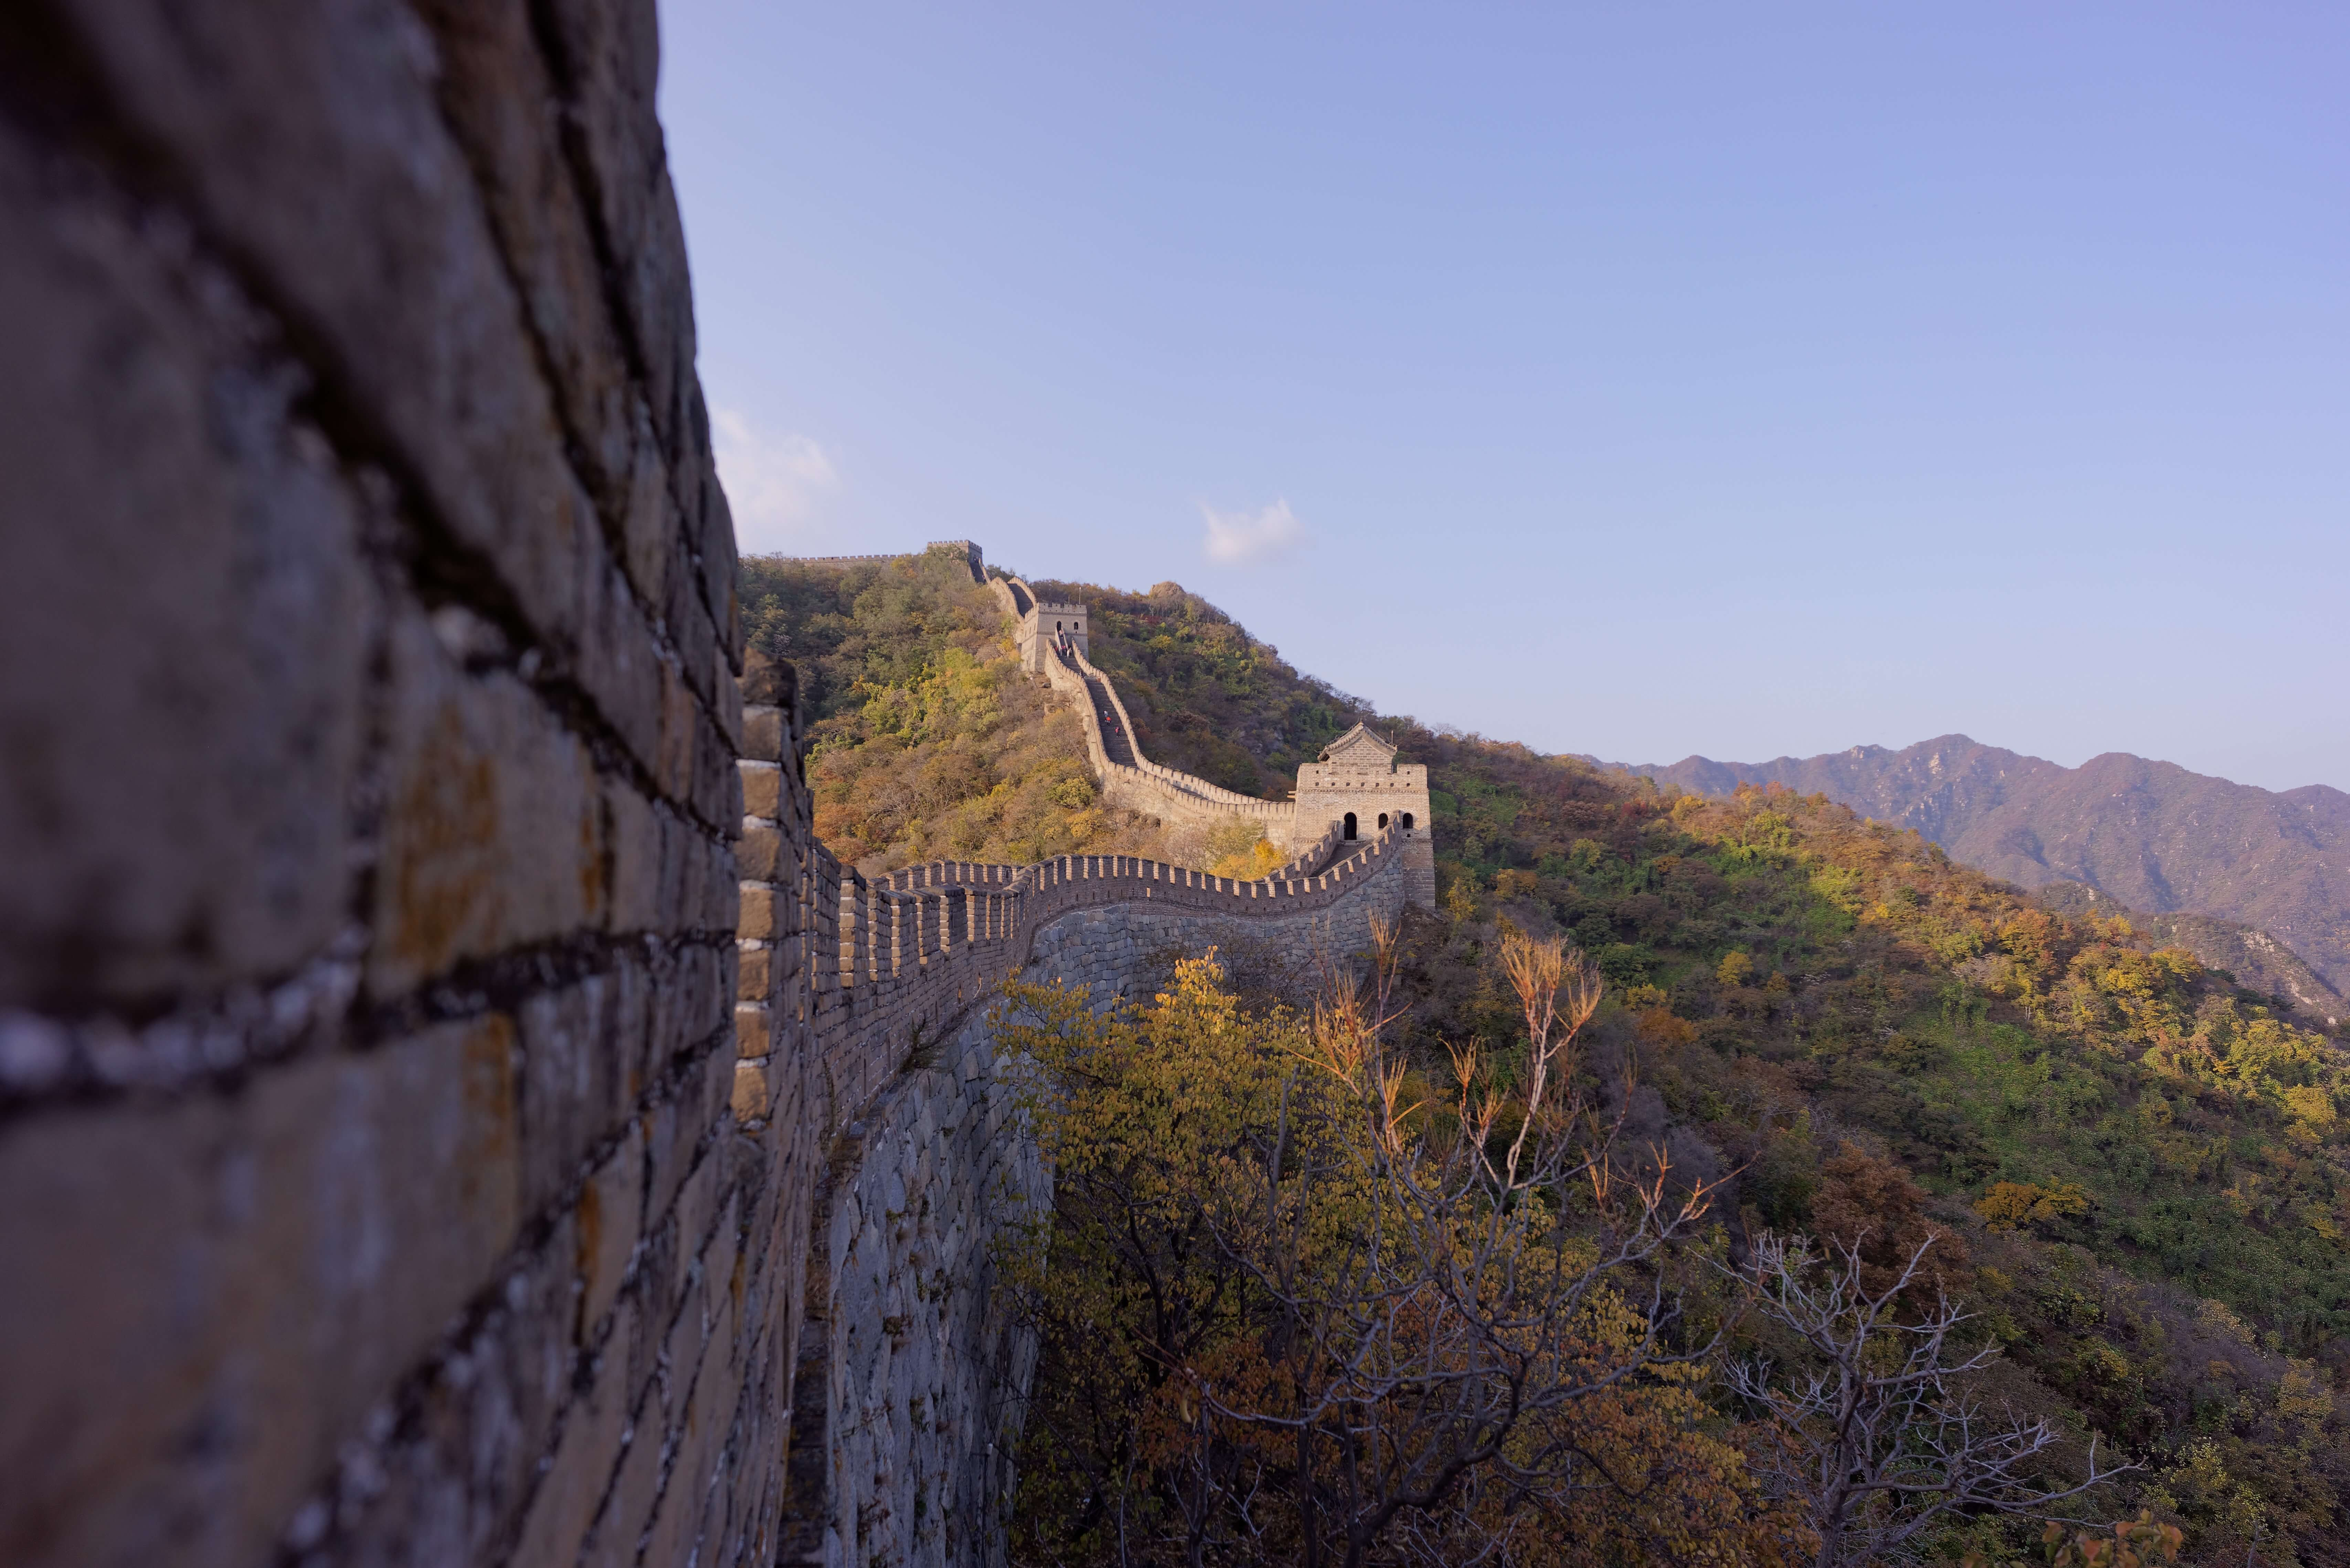 image of great wall of china historical heritage